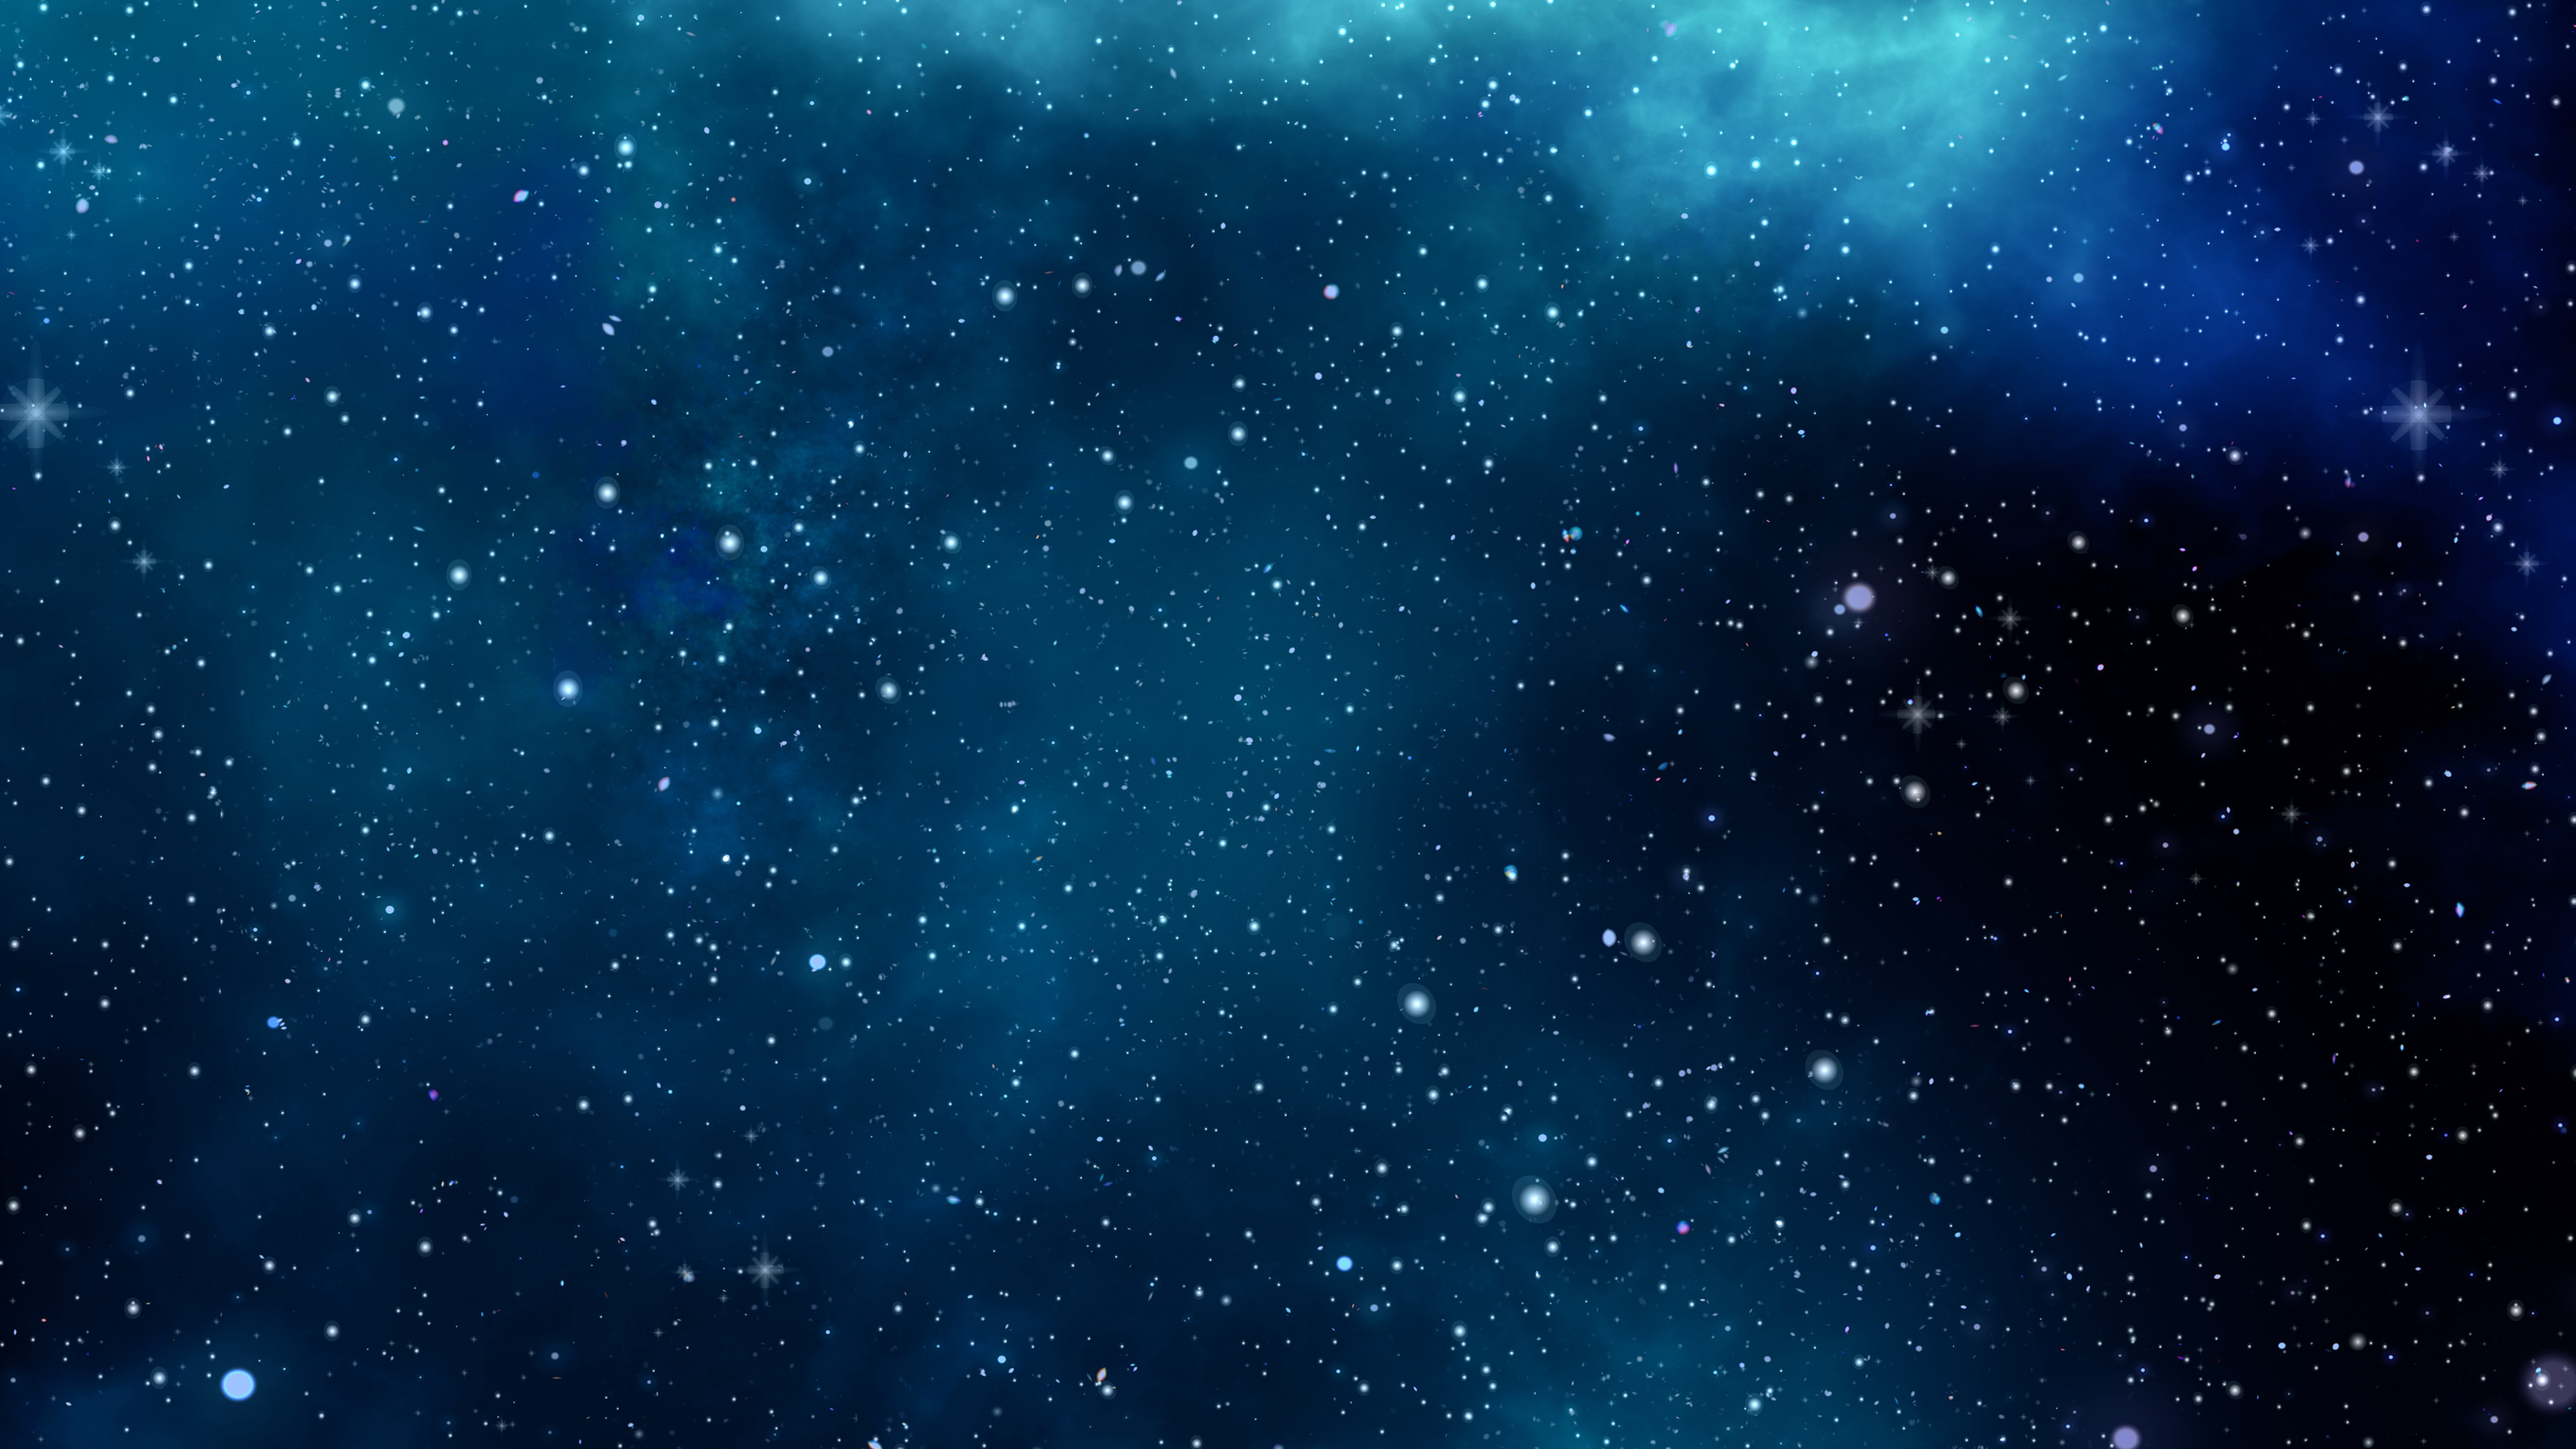 3840x2160 Blue Space 4K Wallpaper Download Blue Space 4K Wallpaper Download